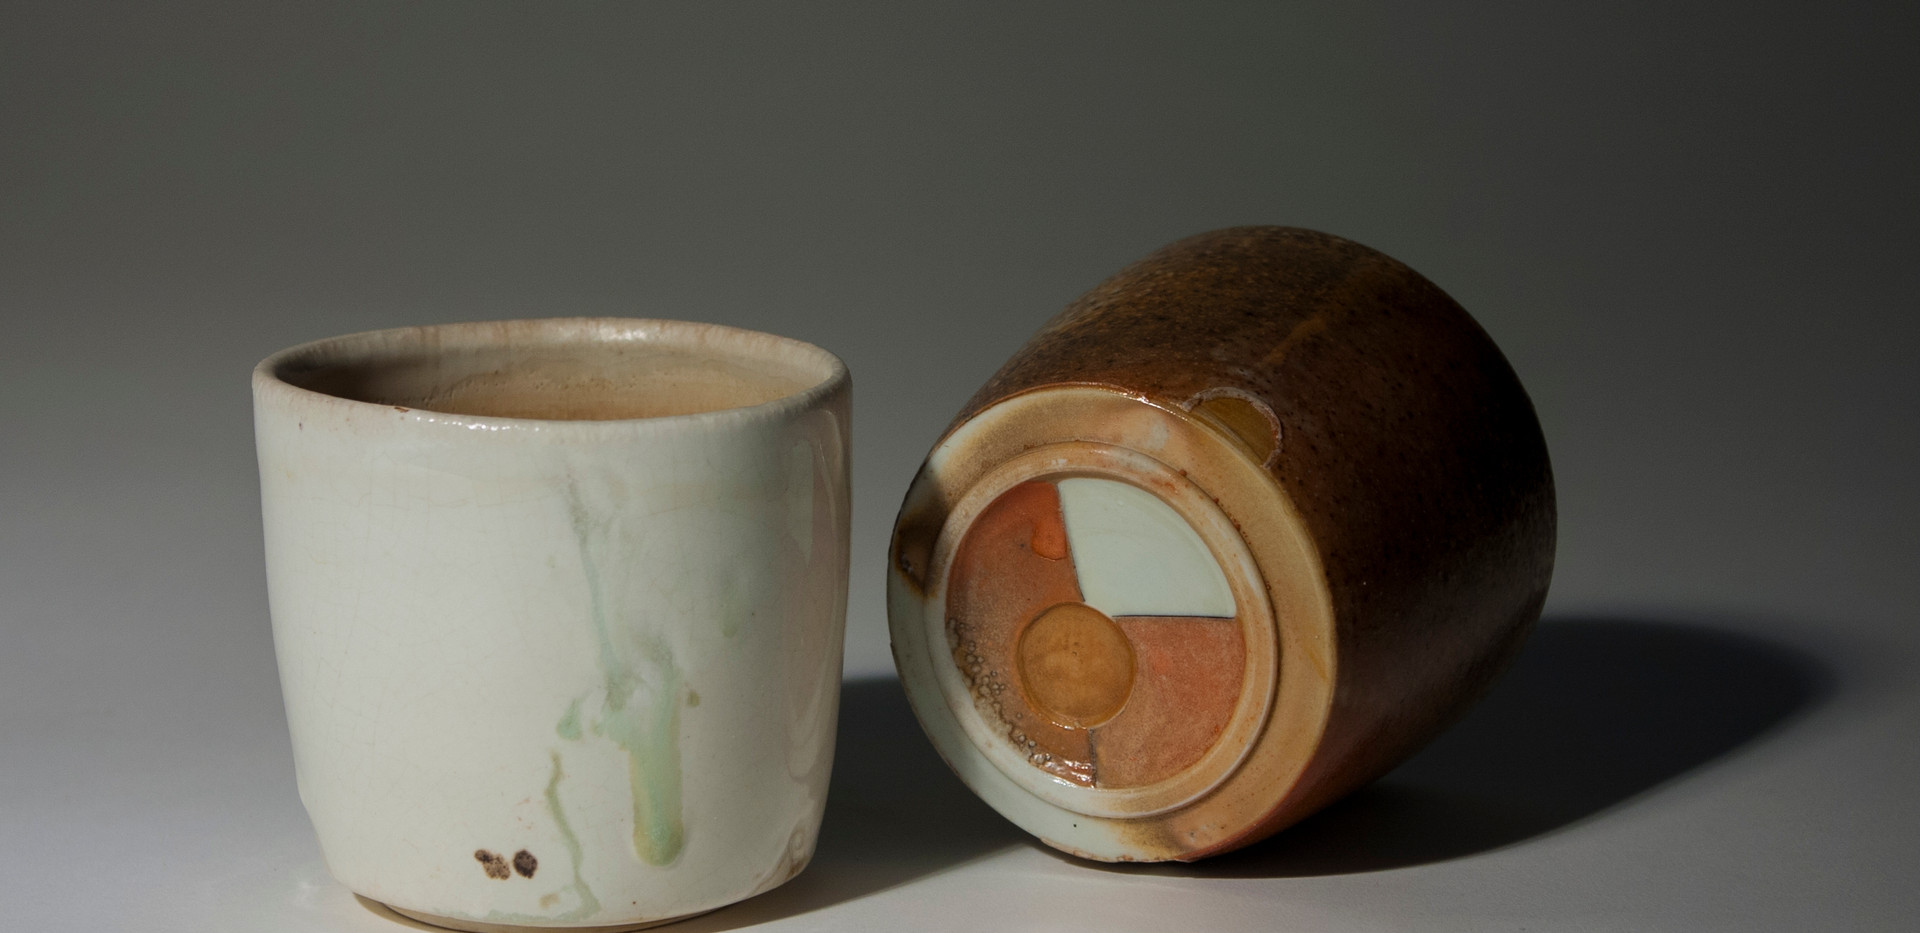 wood cup 1 and 2